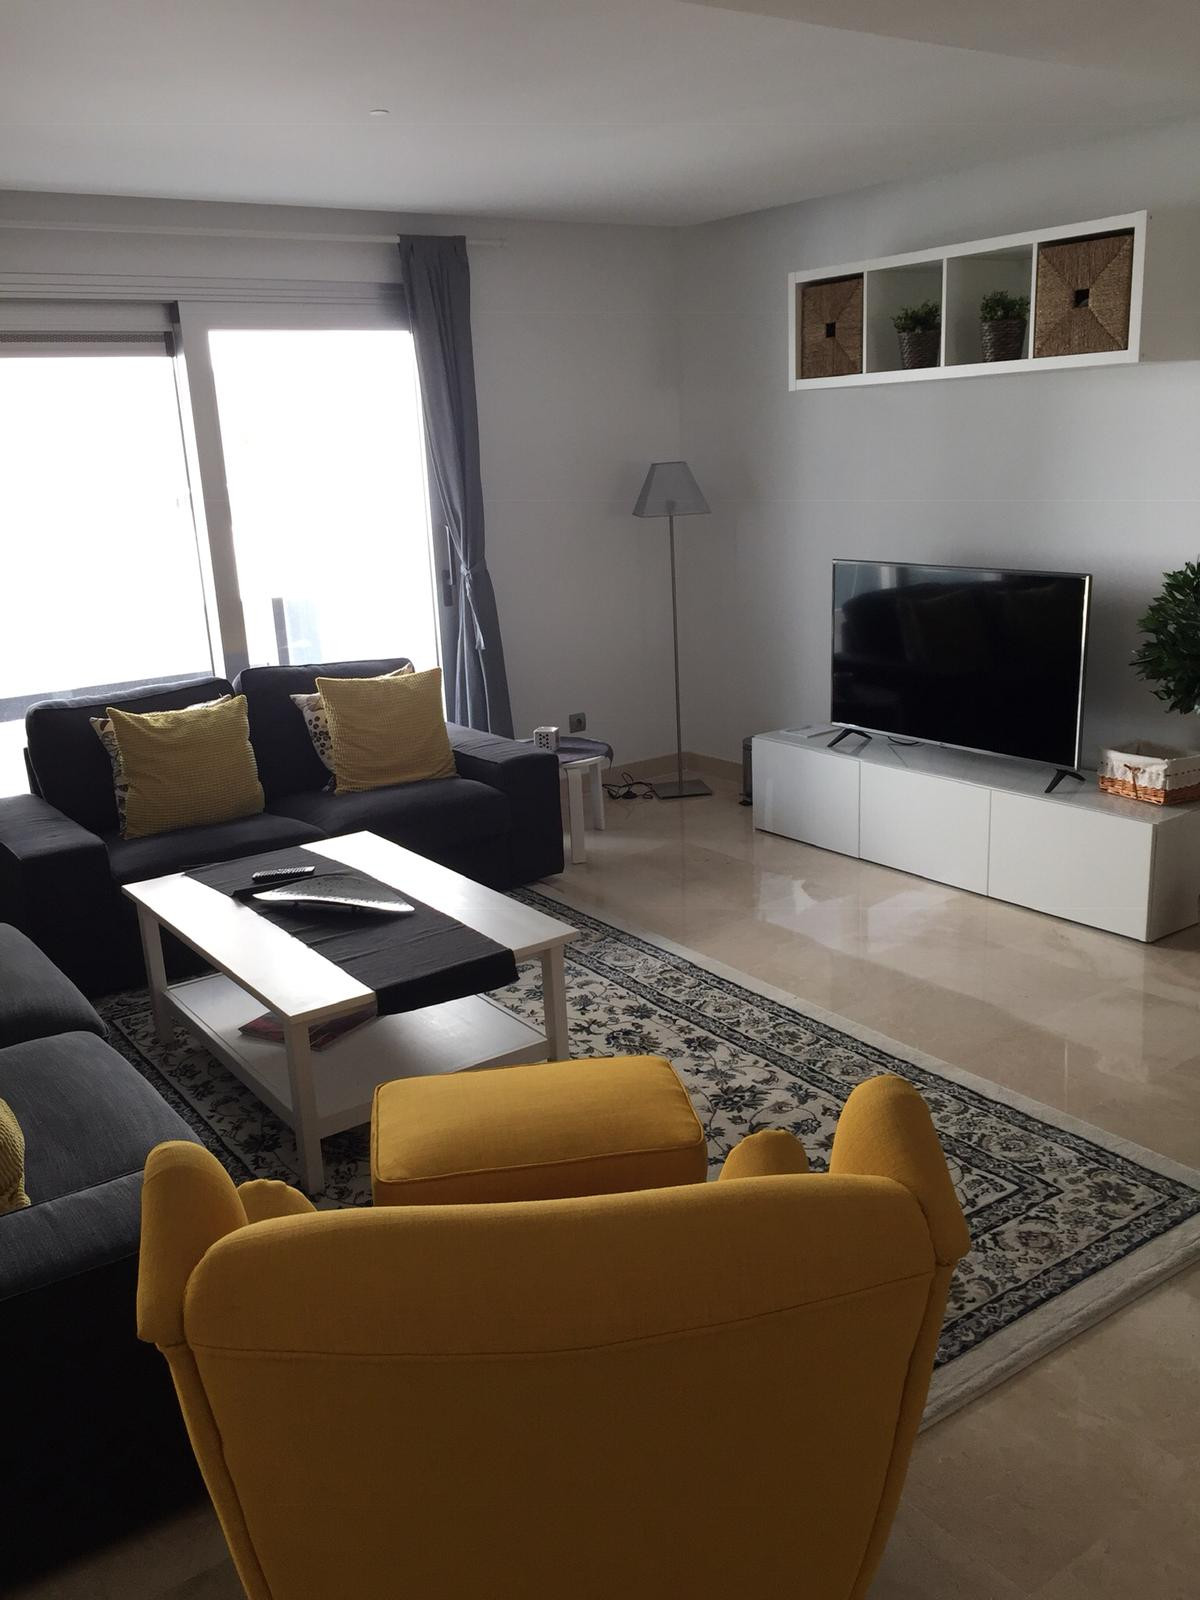 2 bed 2 bath in a contemporary newly built urbanisation., Spain